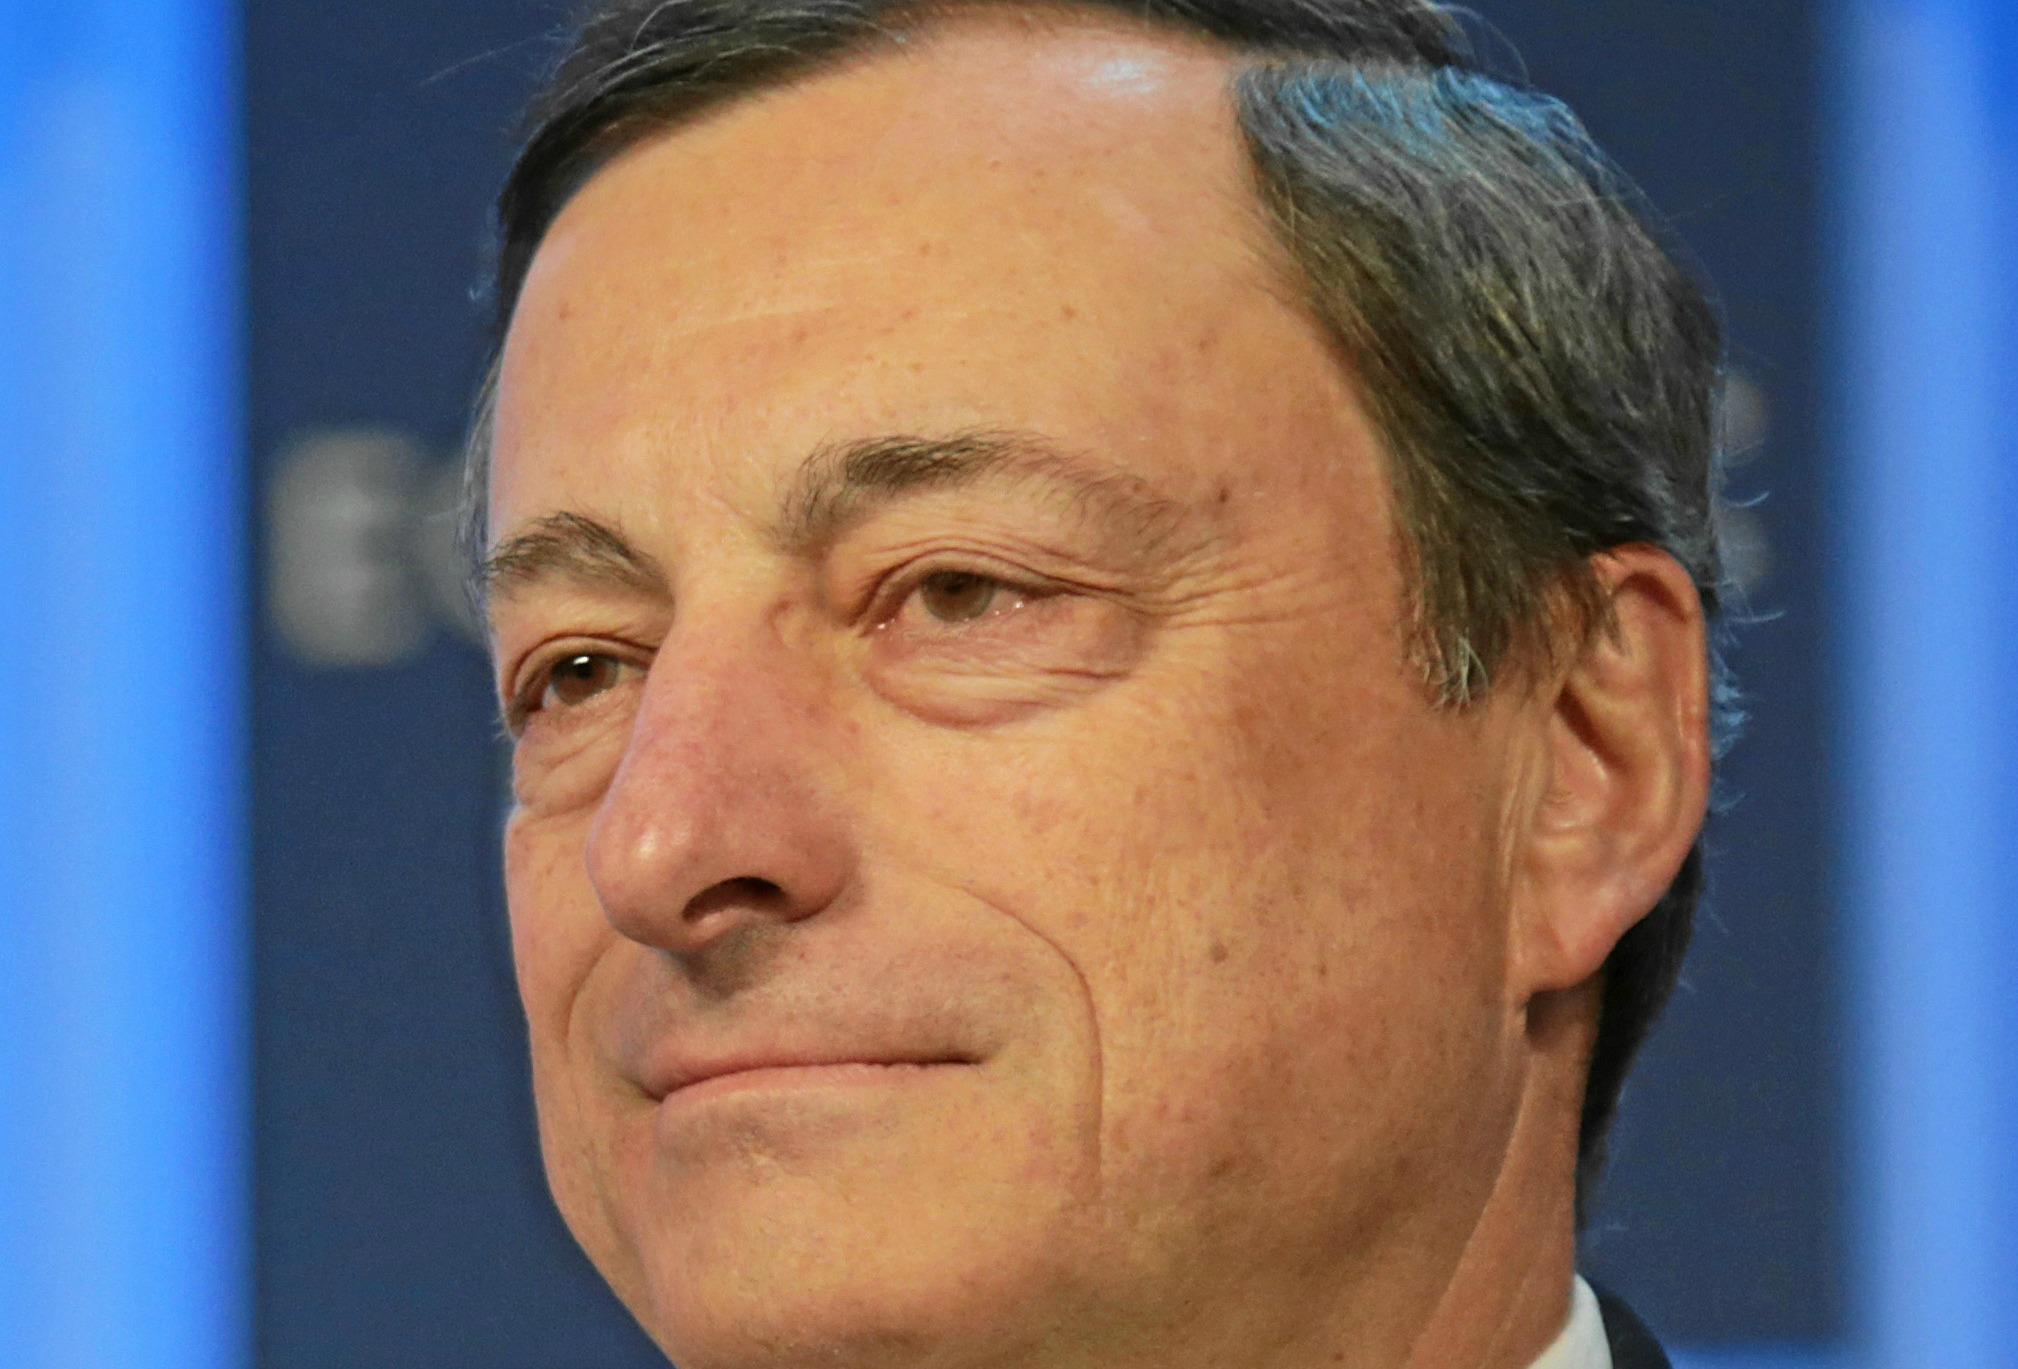 Mario Draghi is the President of the European Central Bank.